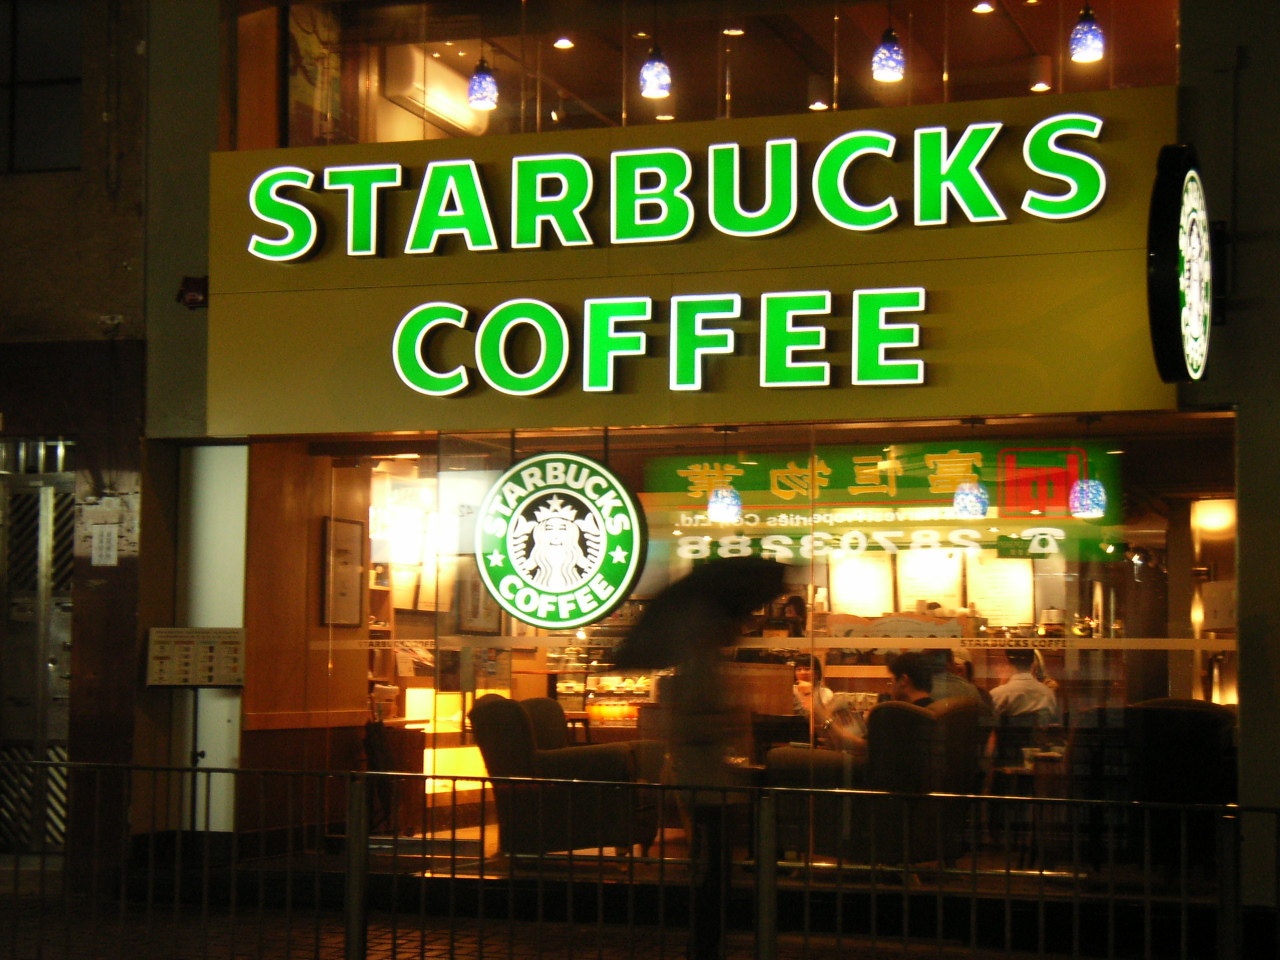 Just How Far Has the Starbucks Brand Spread?